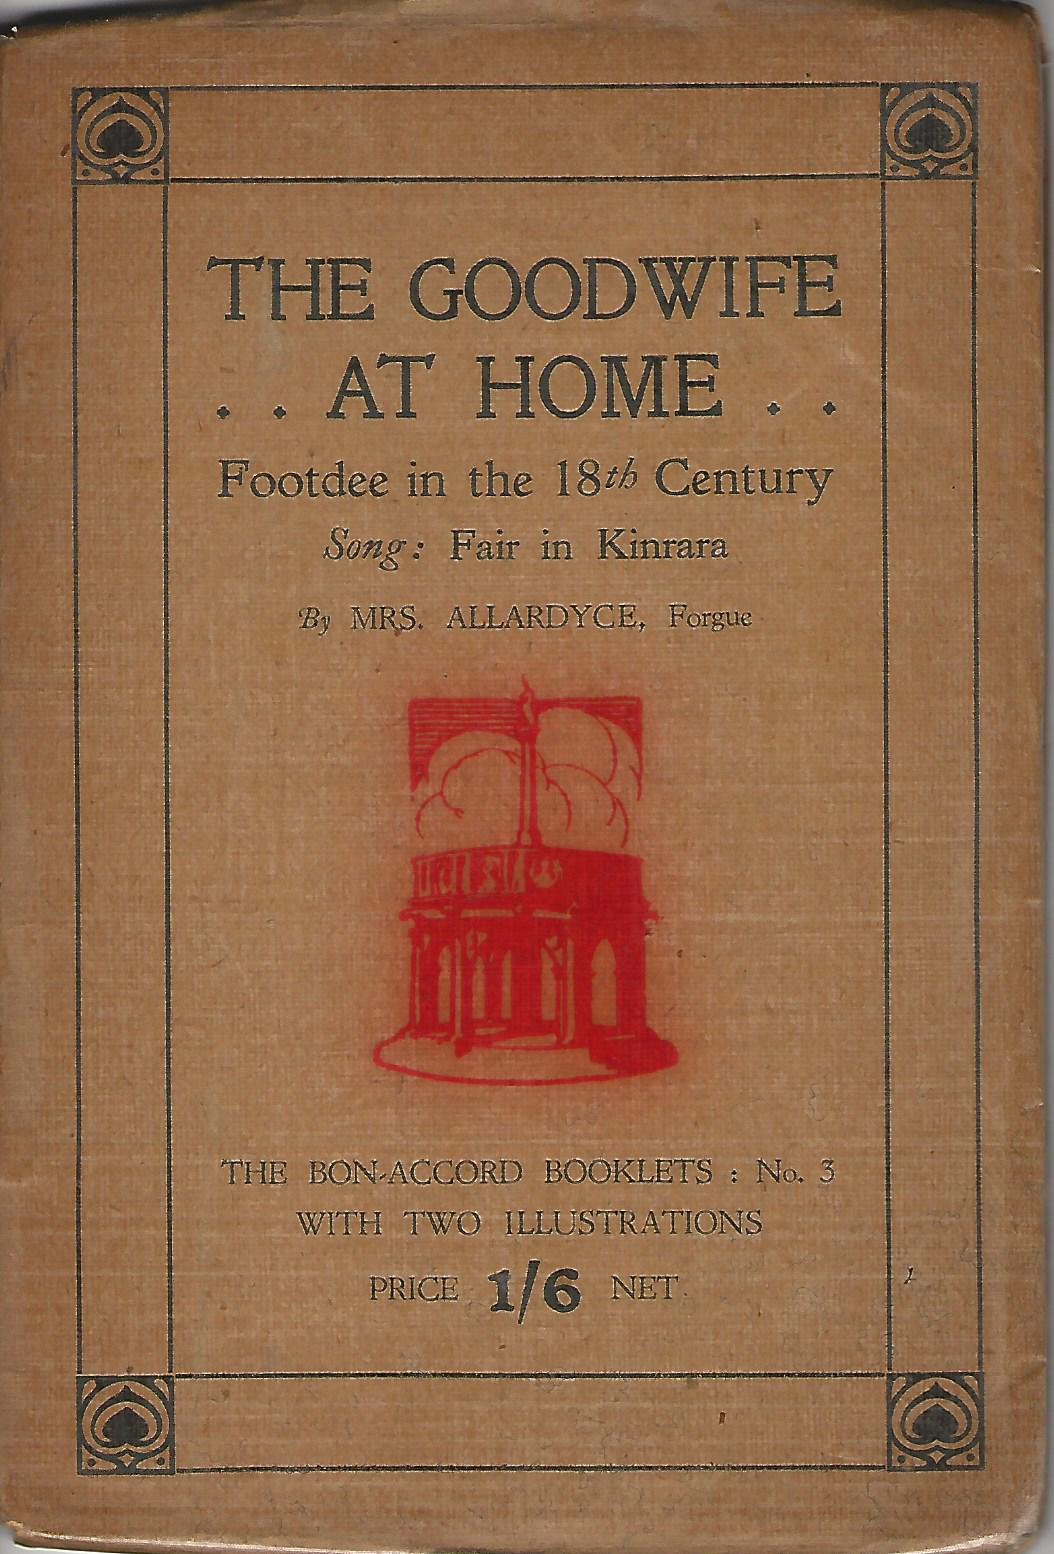 Image for The Goodwife at Home: Footdee in the 18th Century.